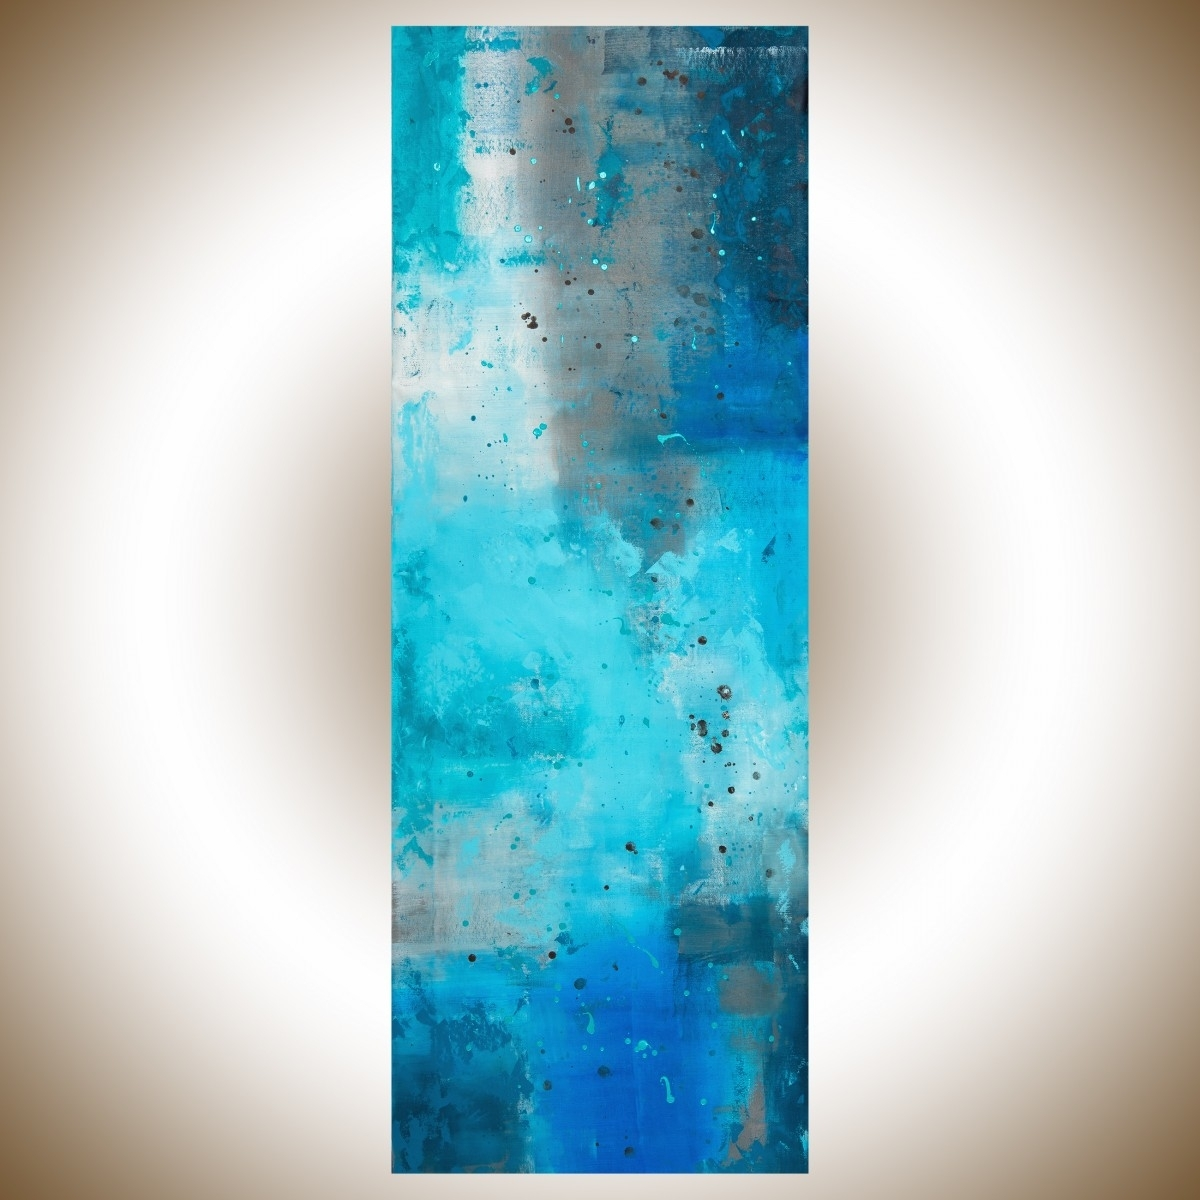 "The Mistqiqigallery 70""x24"" Un Stretched Canvas Original Modern Regarding Most Recent Oversized Teal Canvas Wall Art (View 19 of 20)"